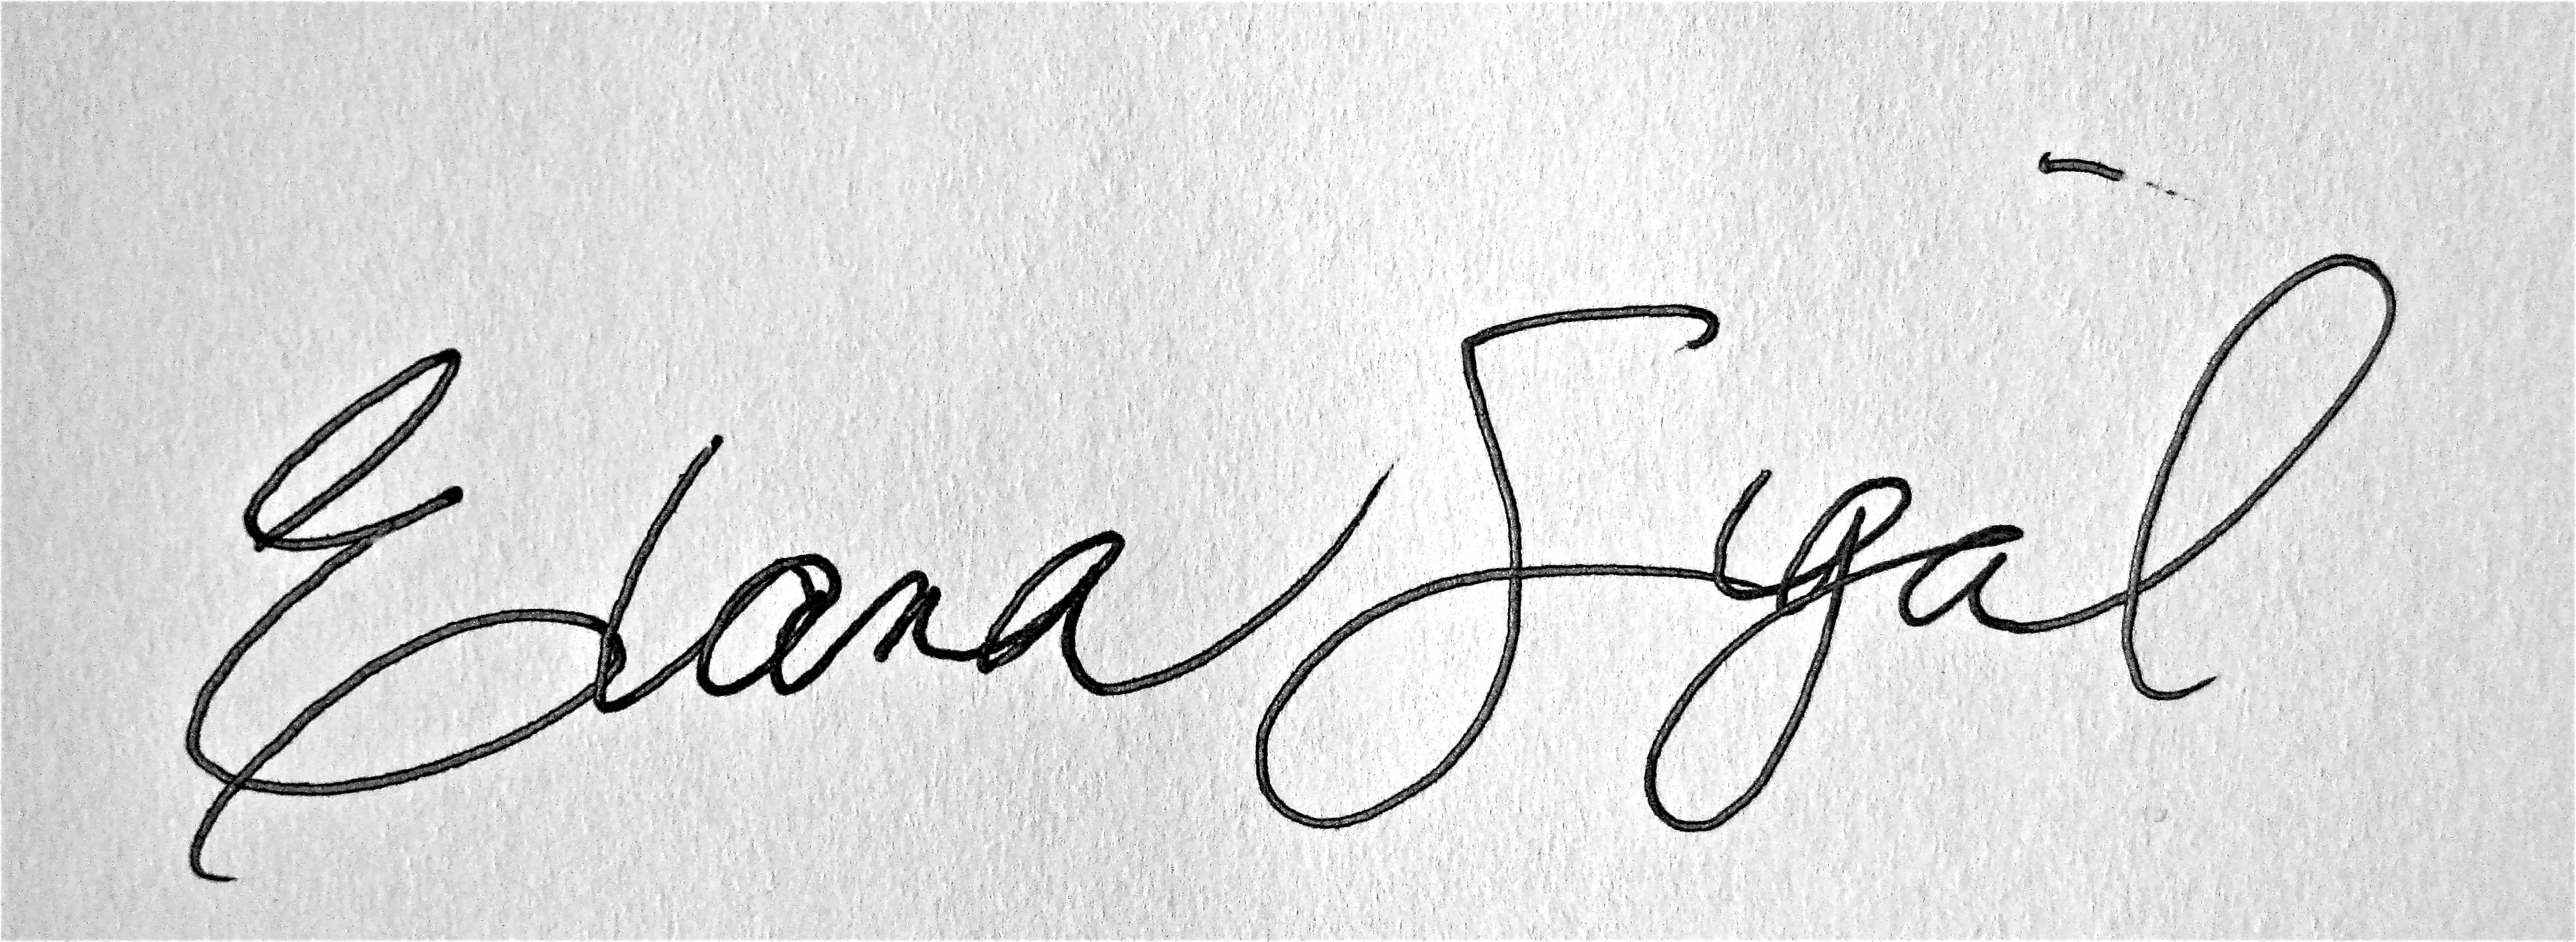 Elana Sigal's Signature